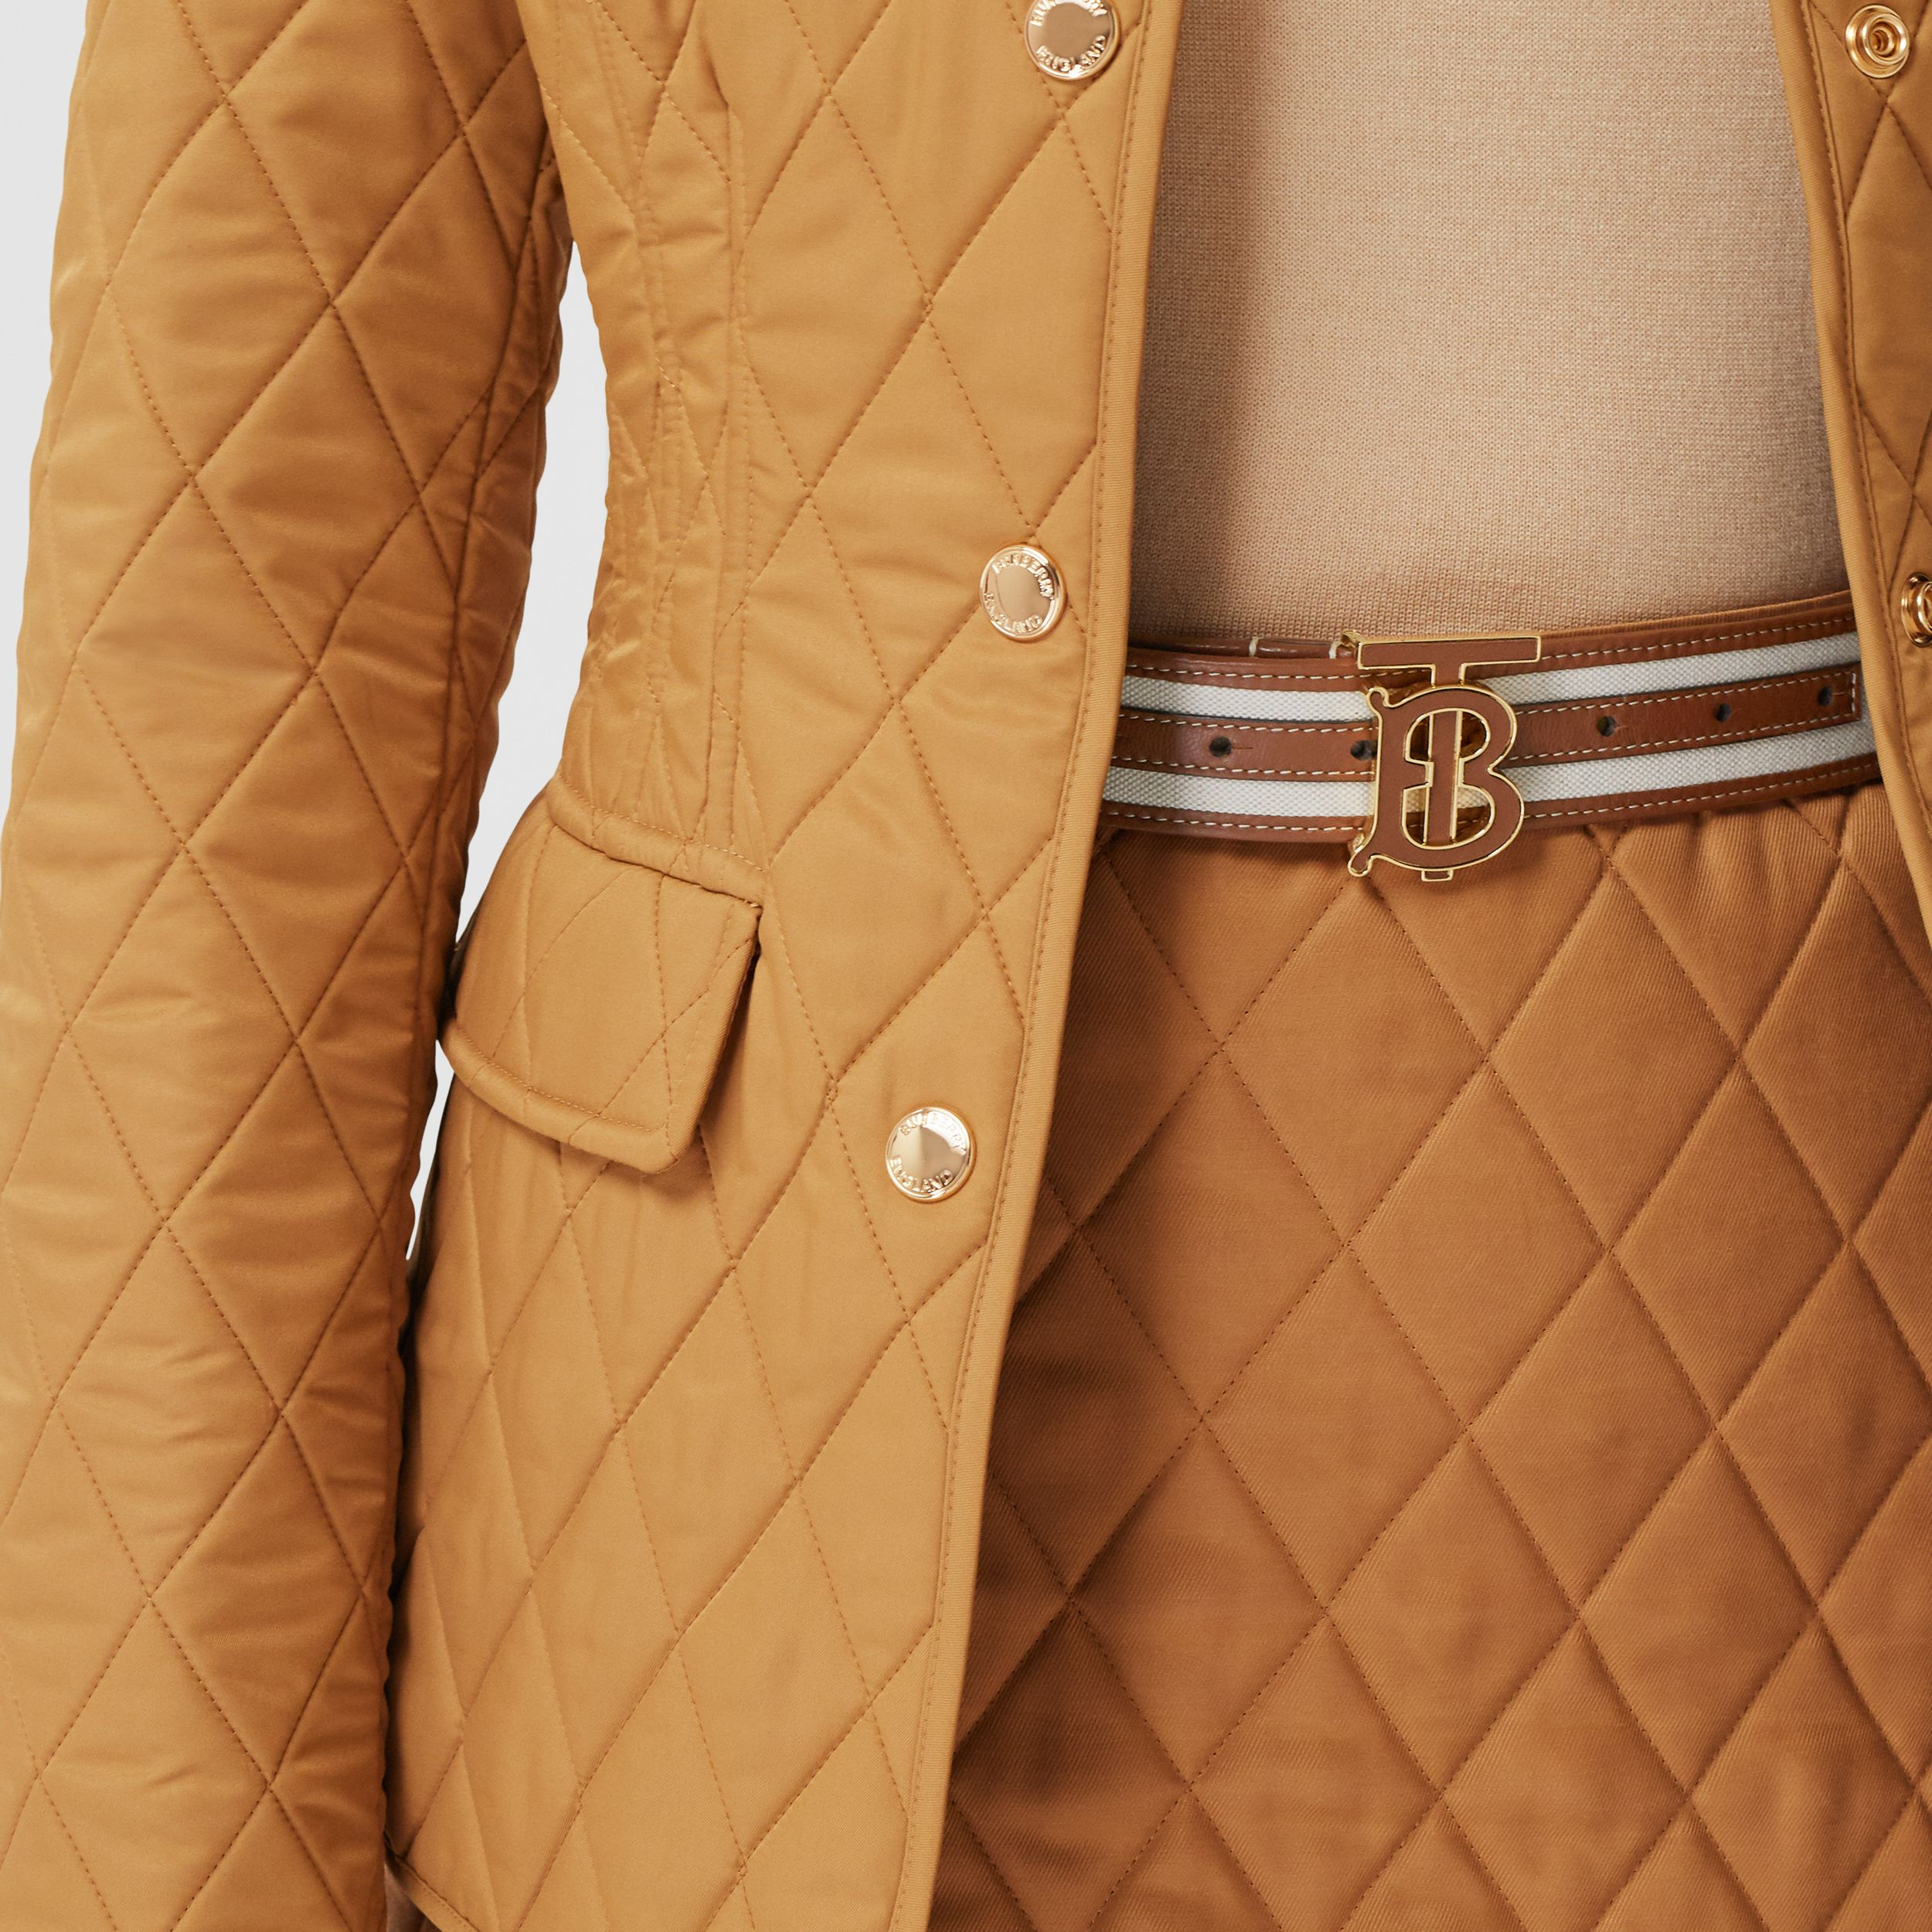 Monogram Motif Canvas and Leather Belt in Natural - Women | Burberry - 3